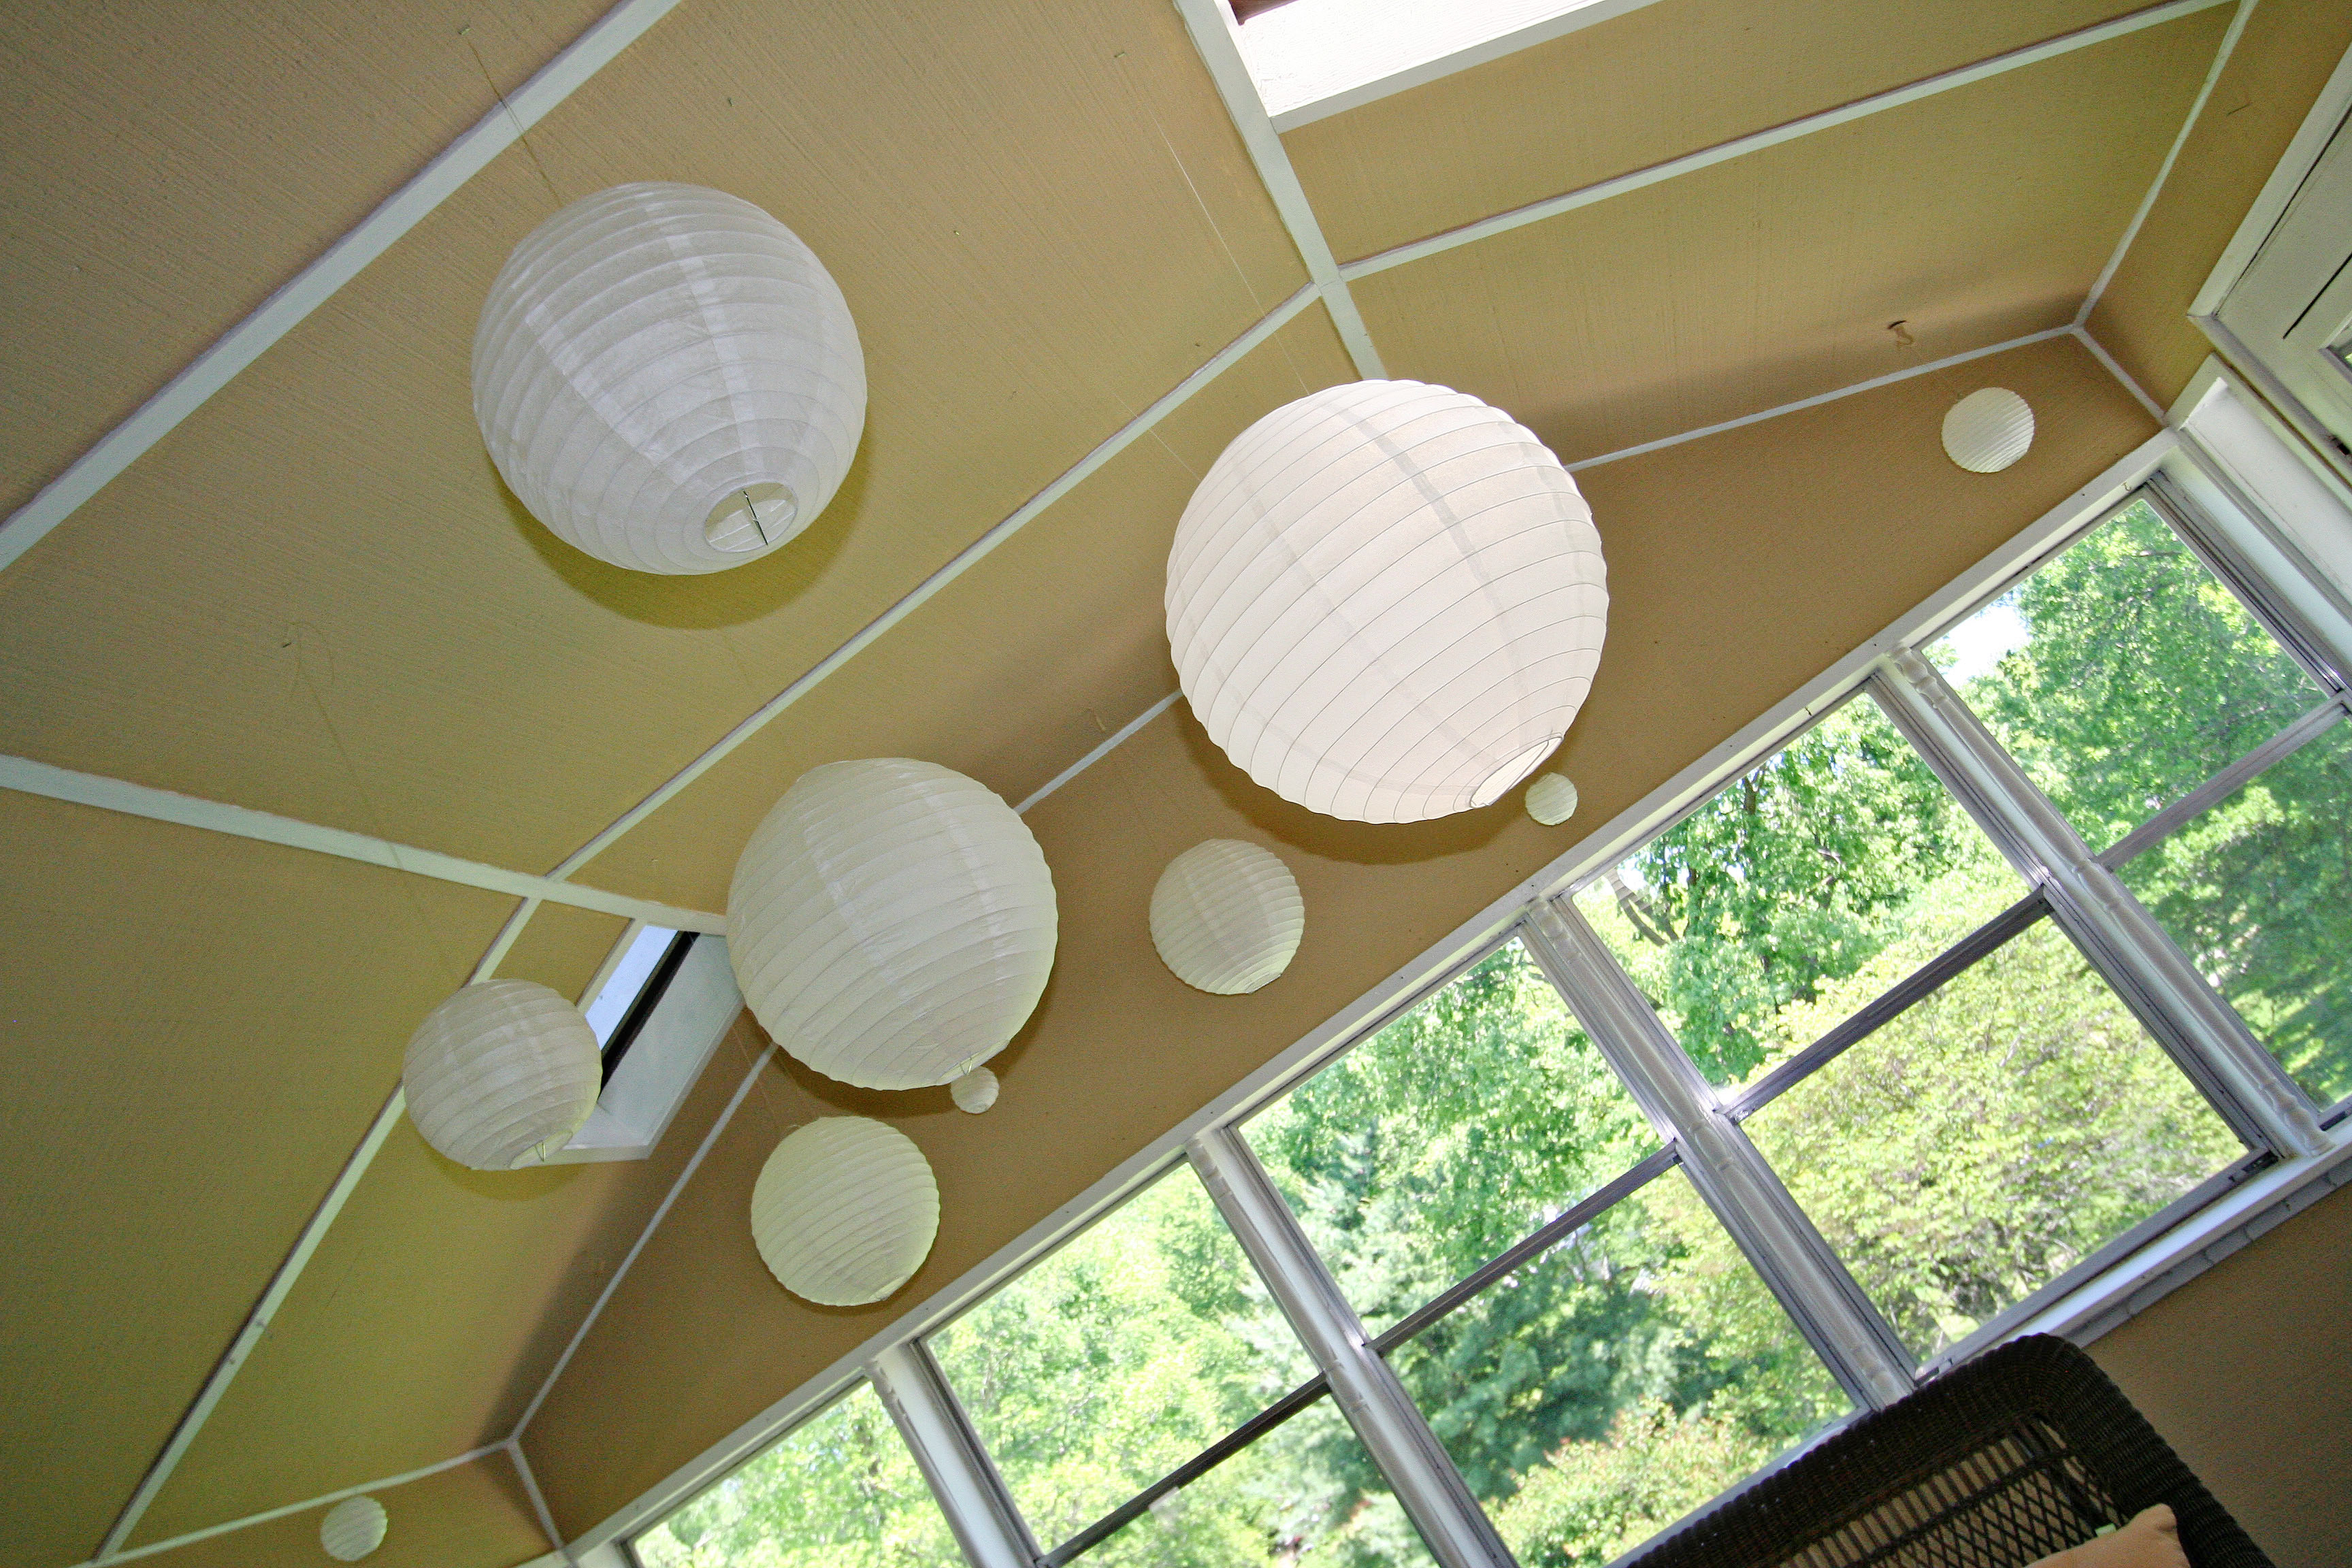 Paper lanterns hanging from sun room ceiling